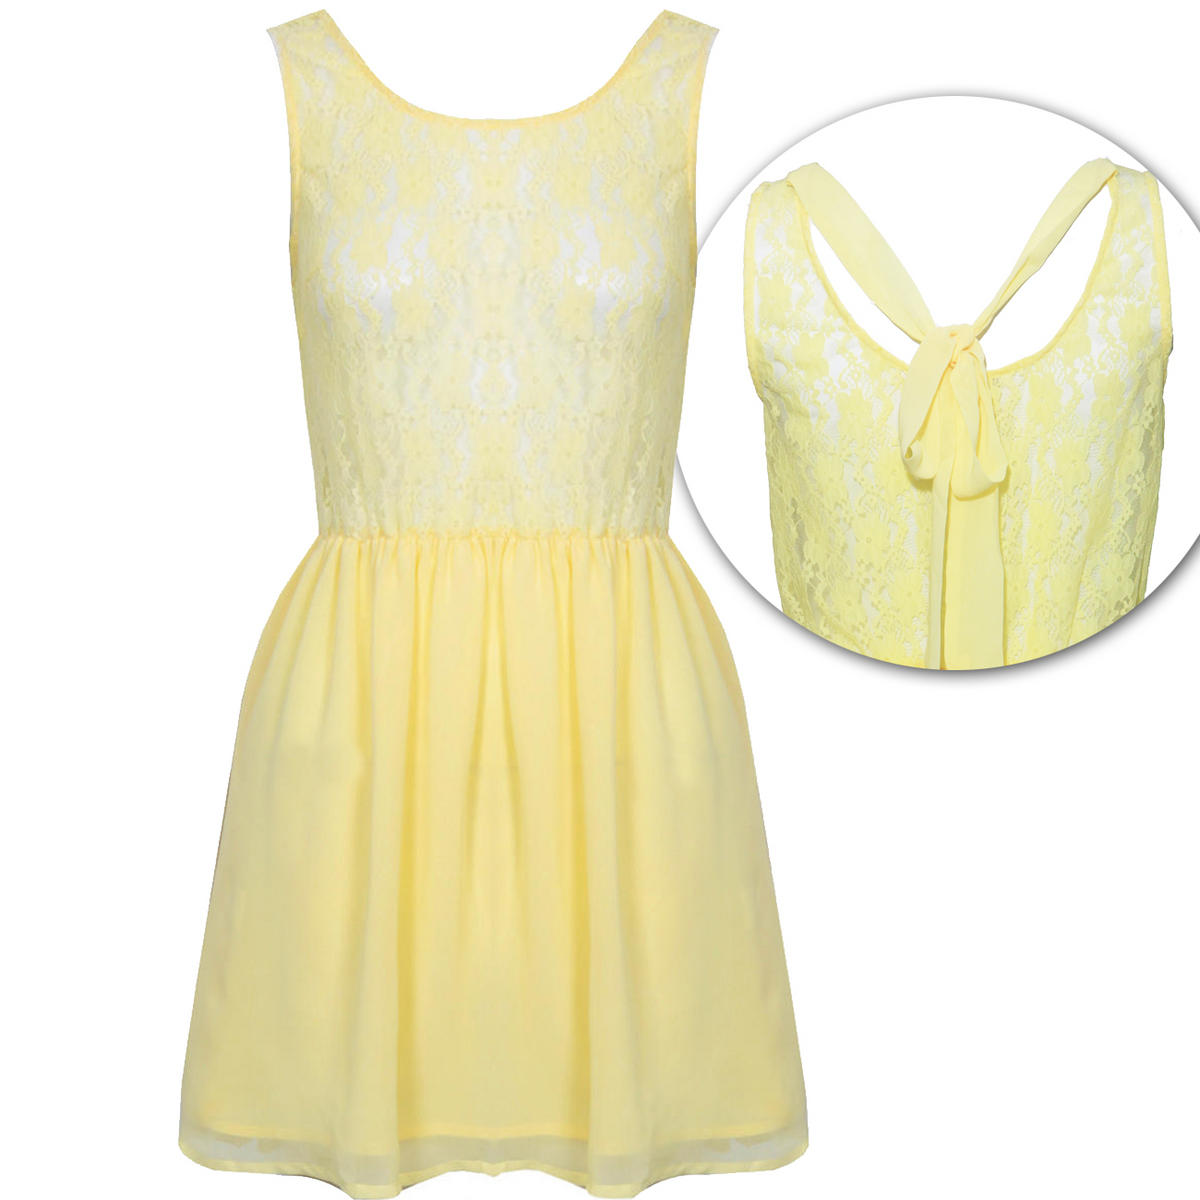 SIZE 12 ONLY Yellow Lace Pleat Dress Preview